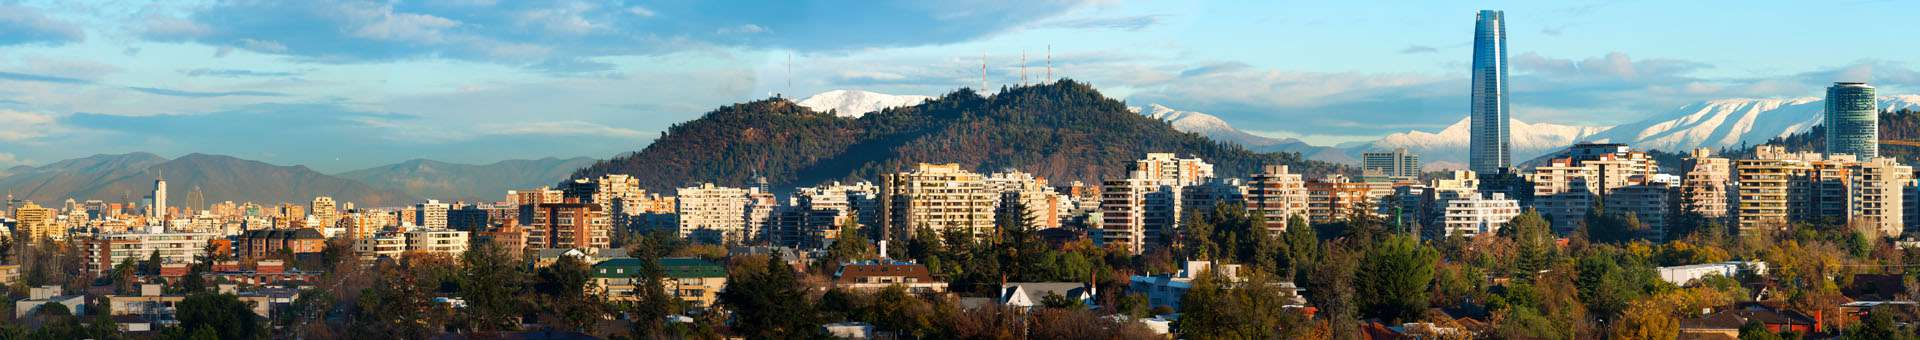 Search Whois information of domain names in Chile